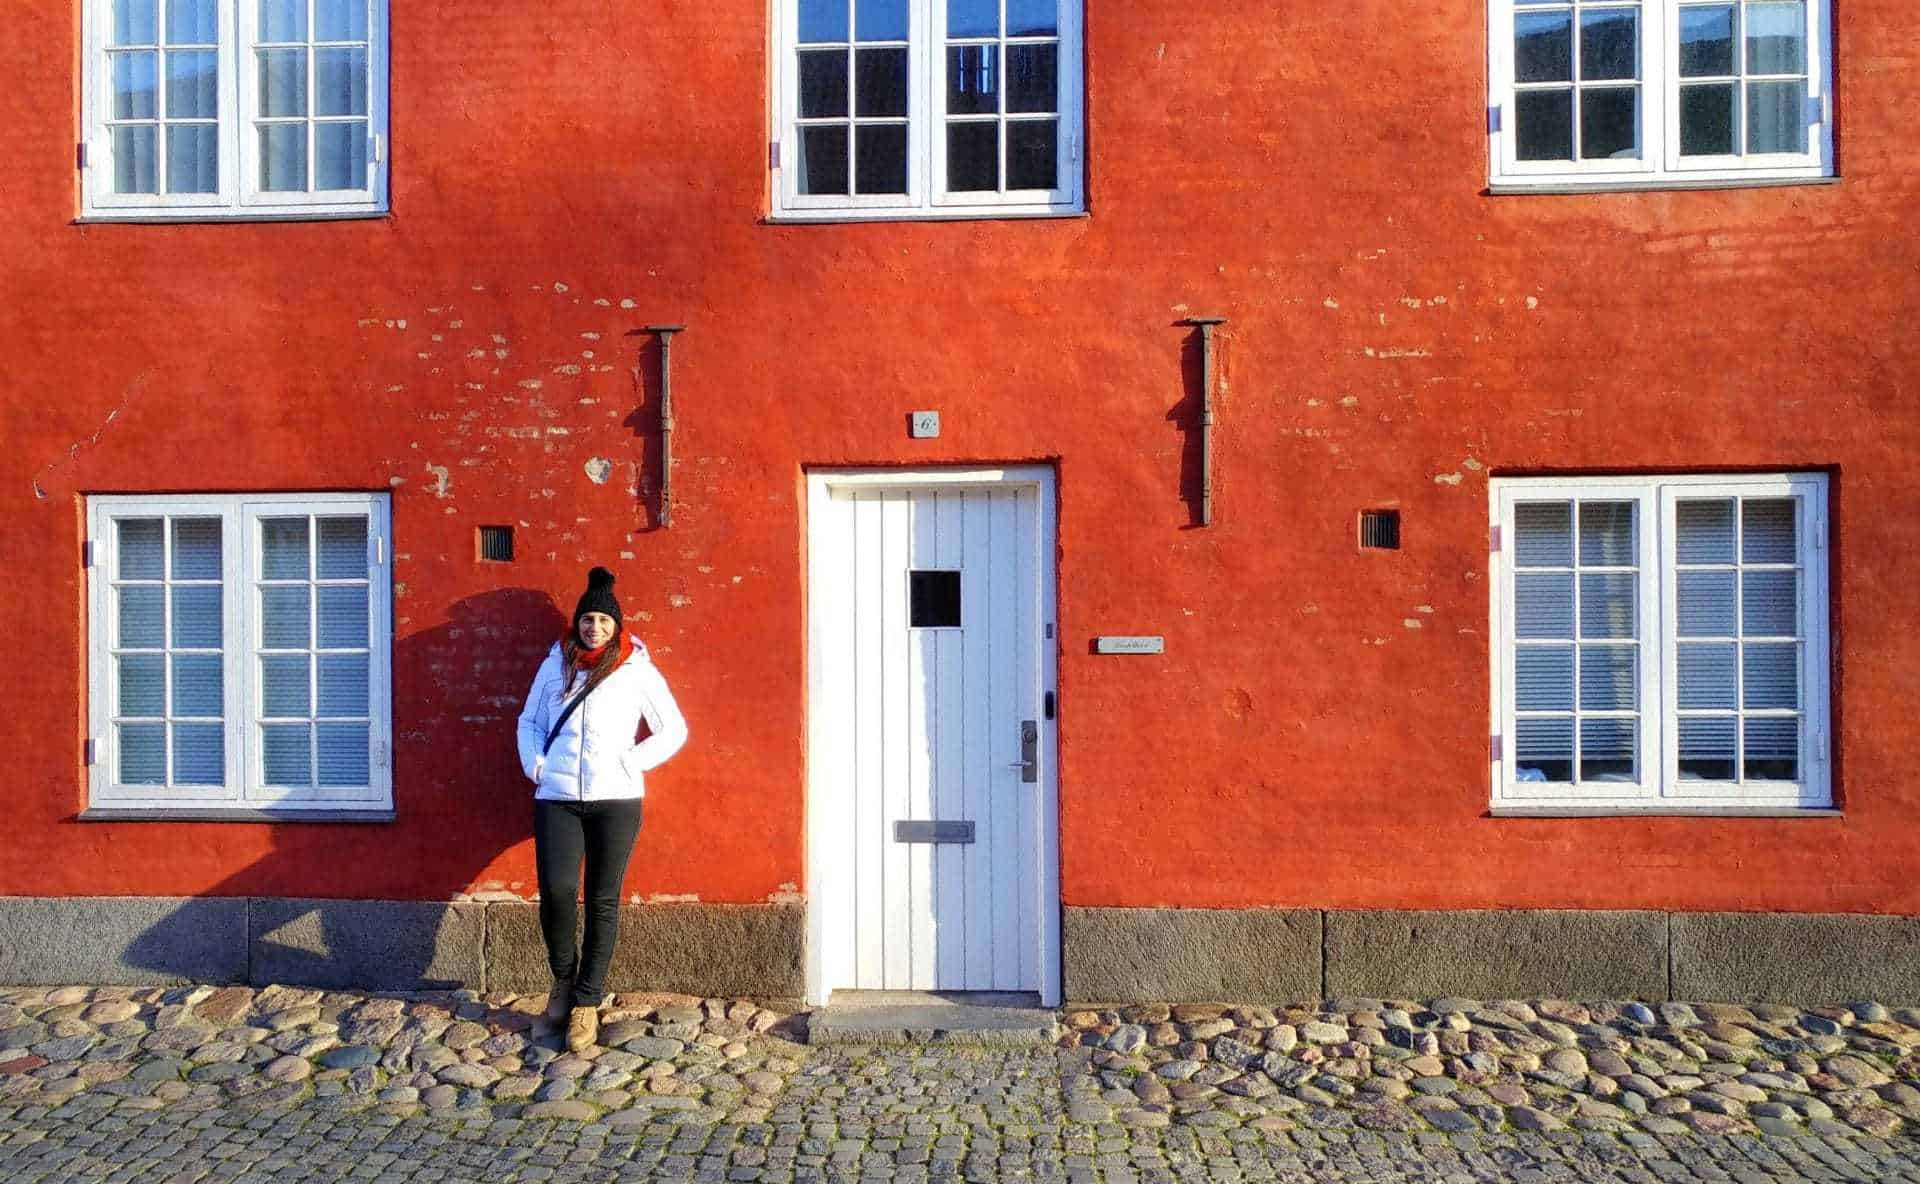 Copenaghen segreta: 5 cose alternative da fare a Copenaghen